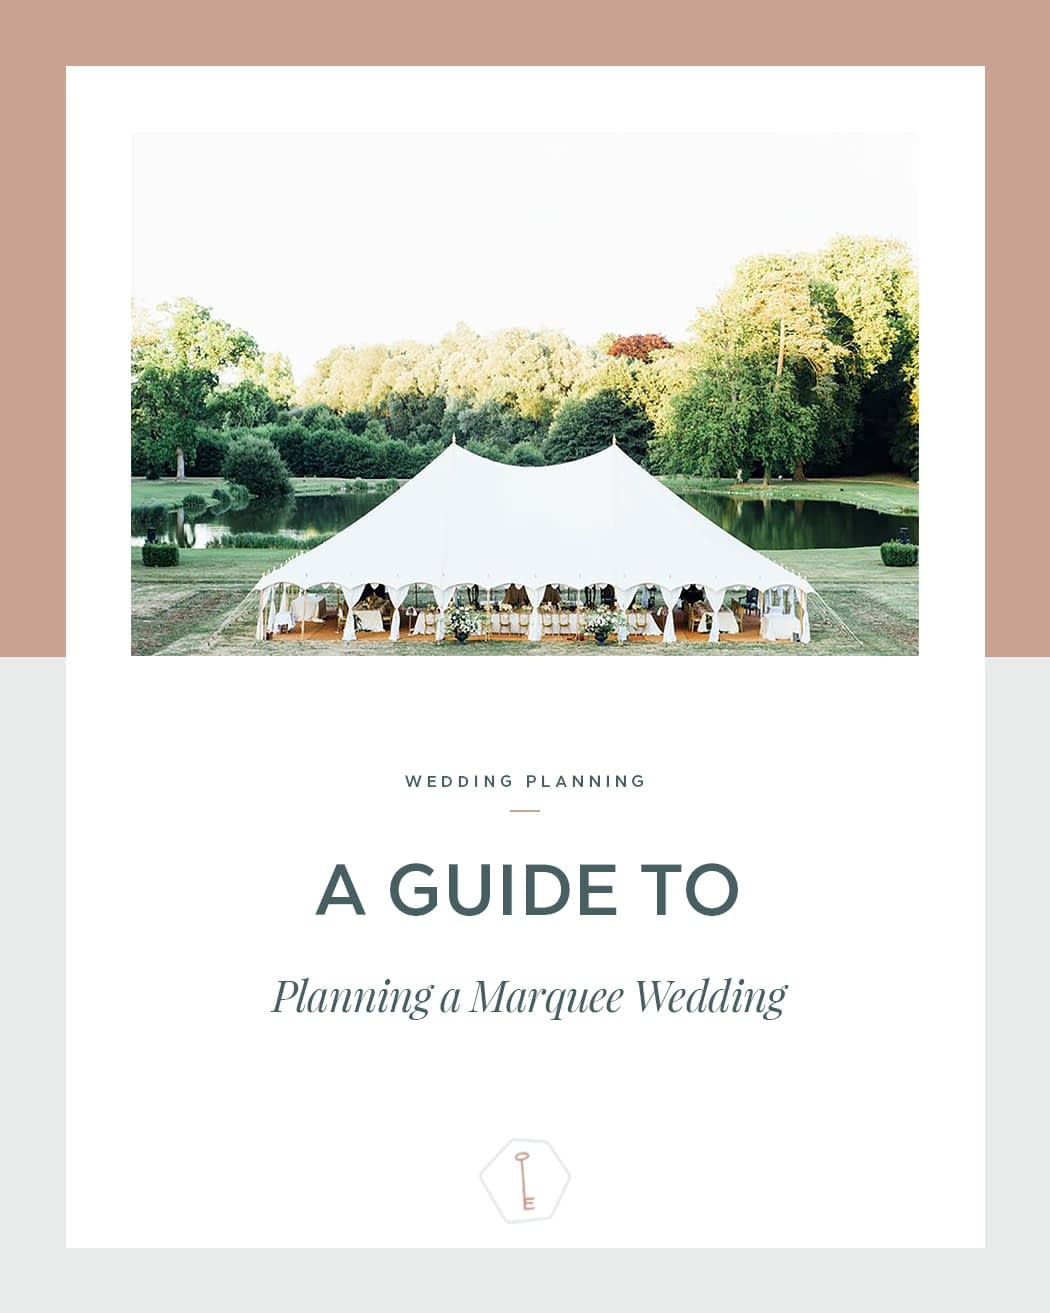 planning-a-marquee-wedding-poster